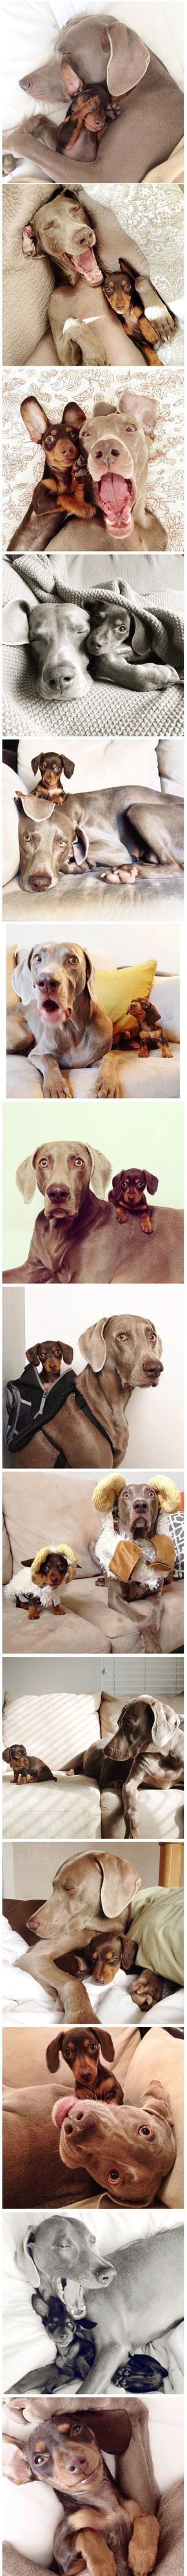 Funny faces! Weimeraner and miniature Dachshund